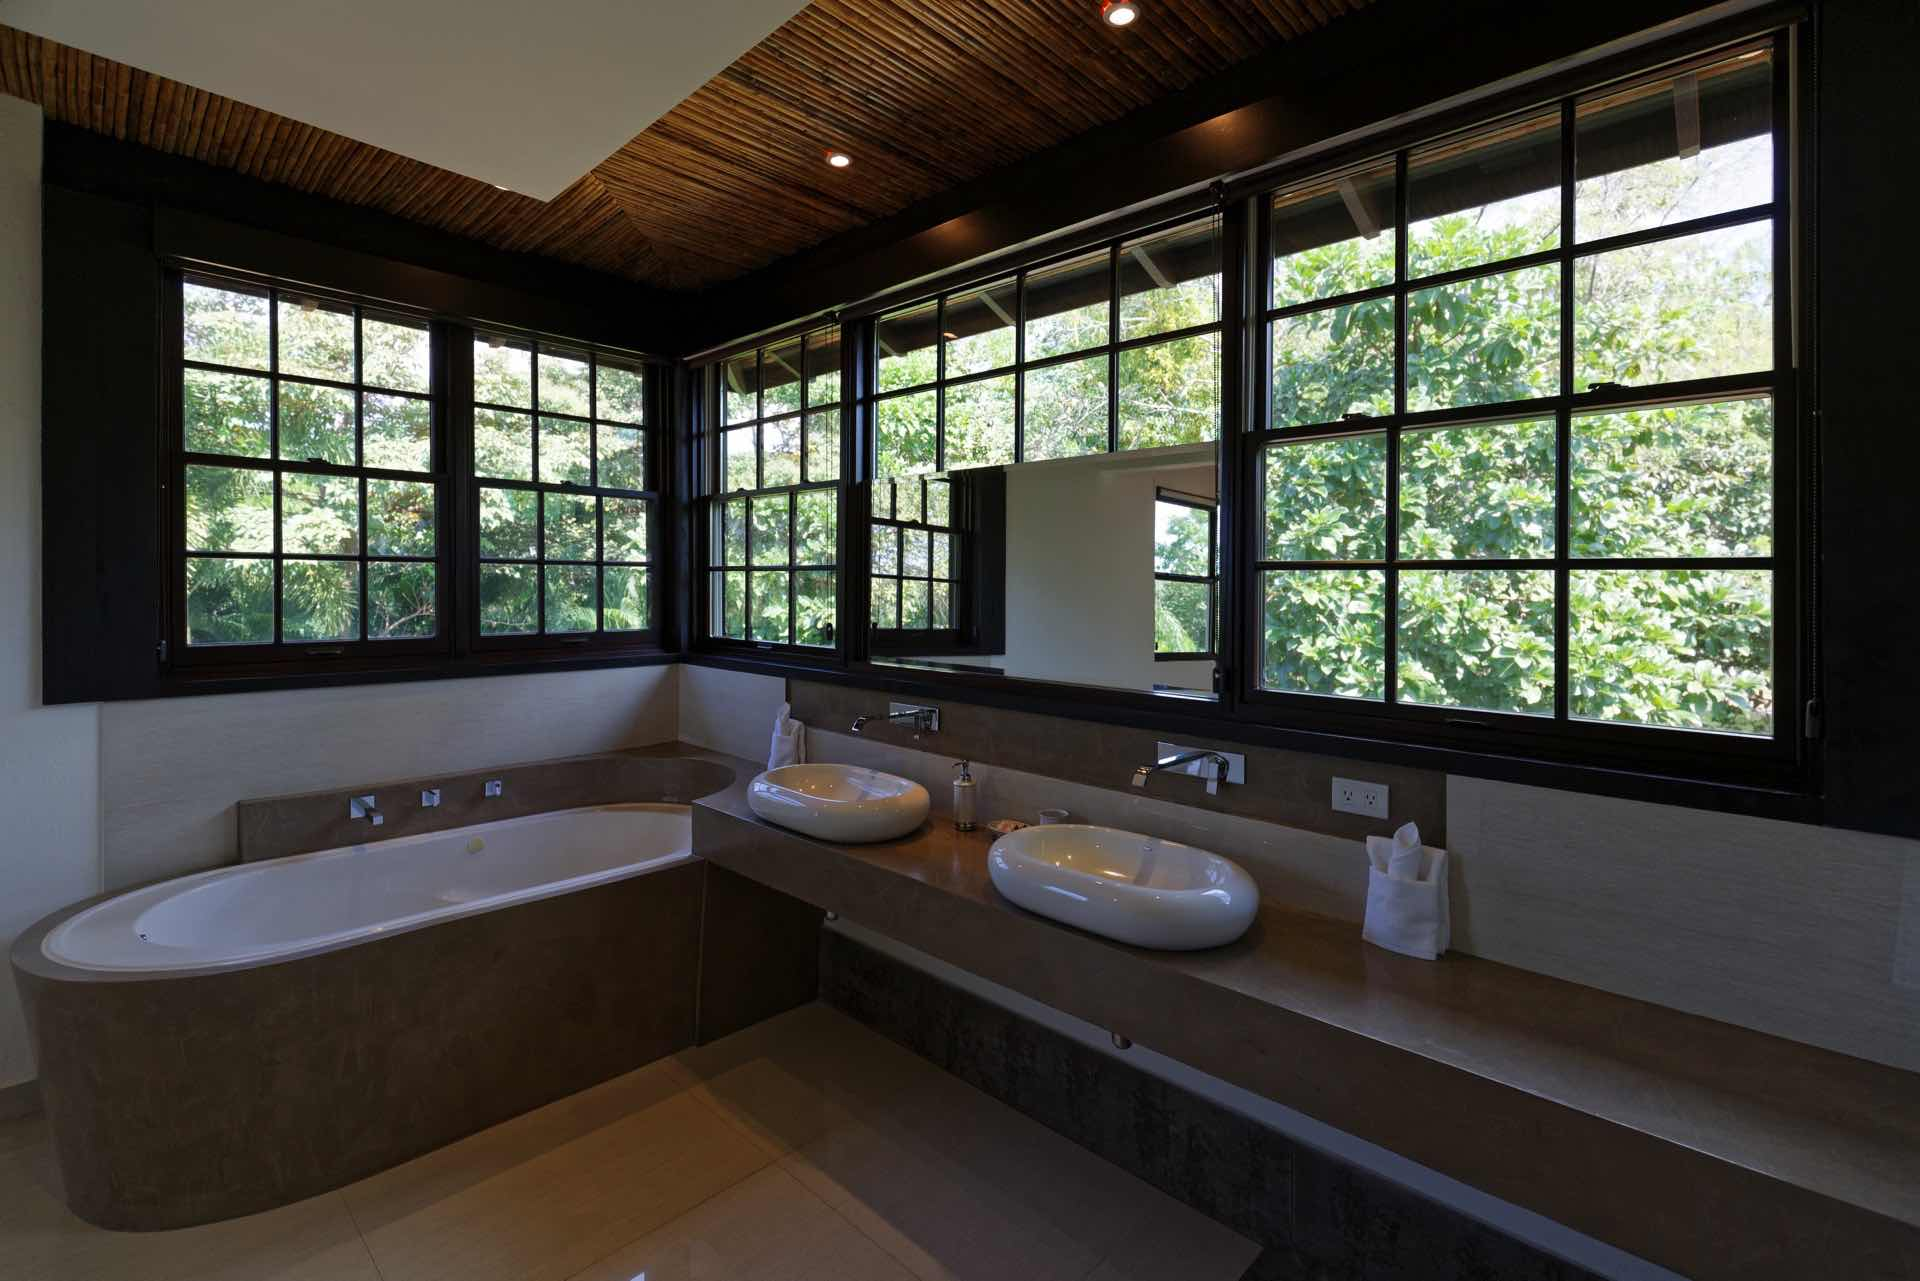 Spacious master bathroom with two sinks and tub